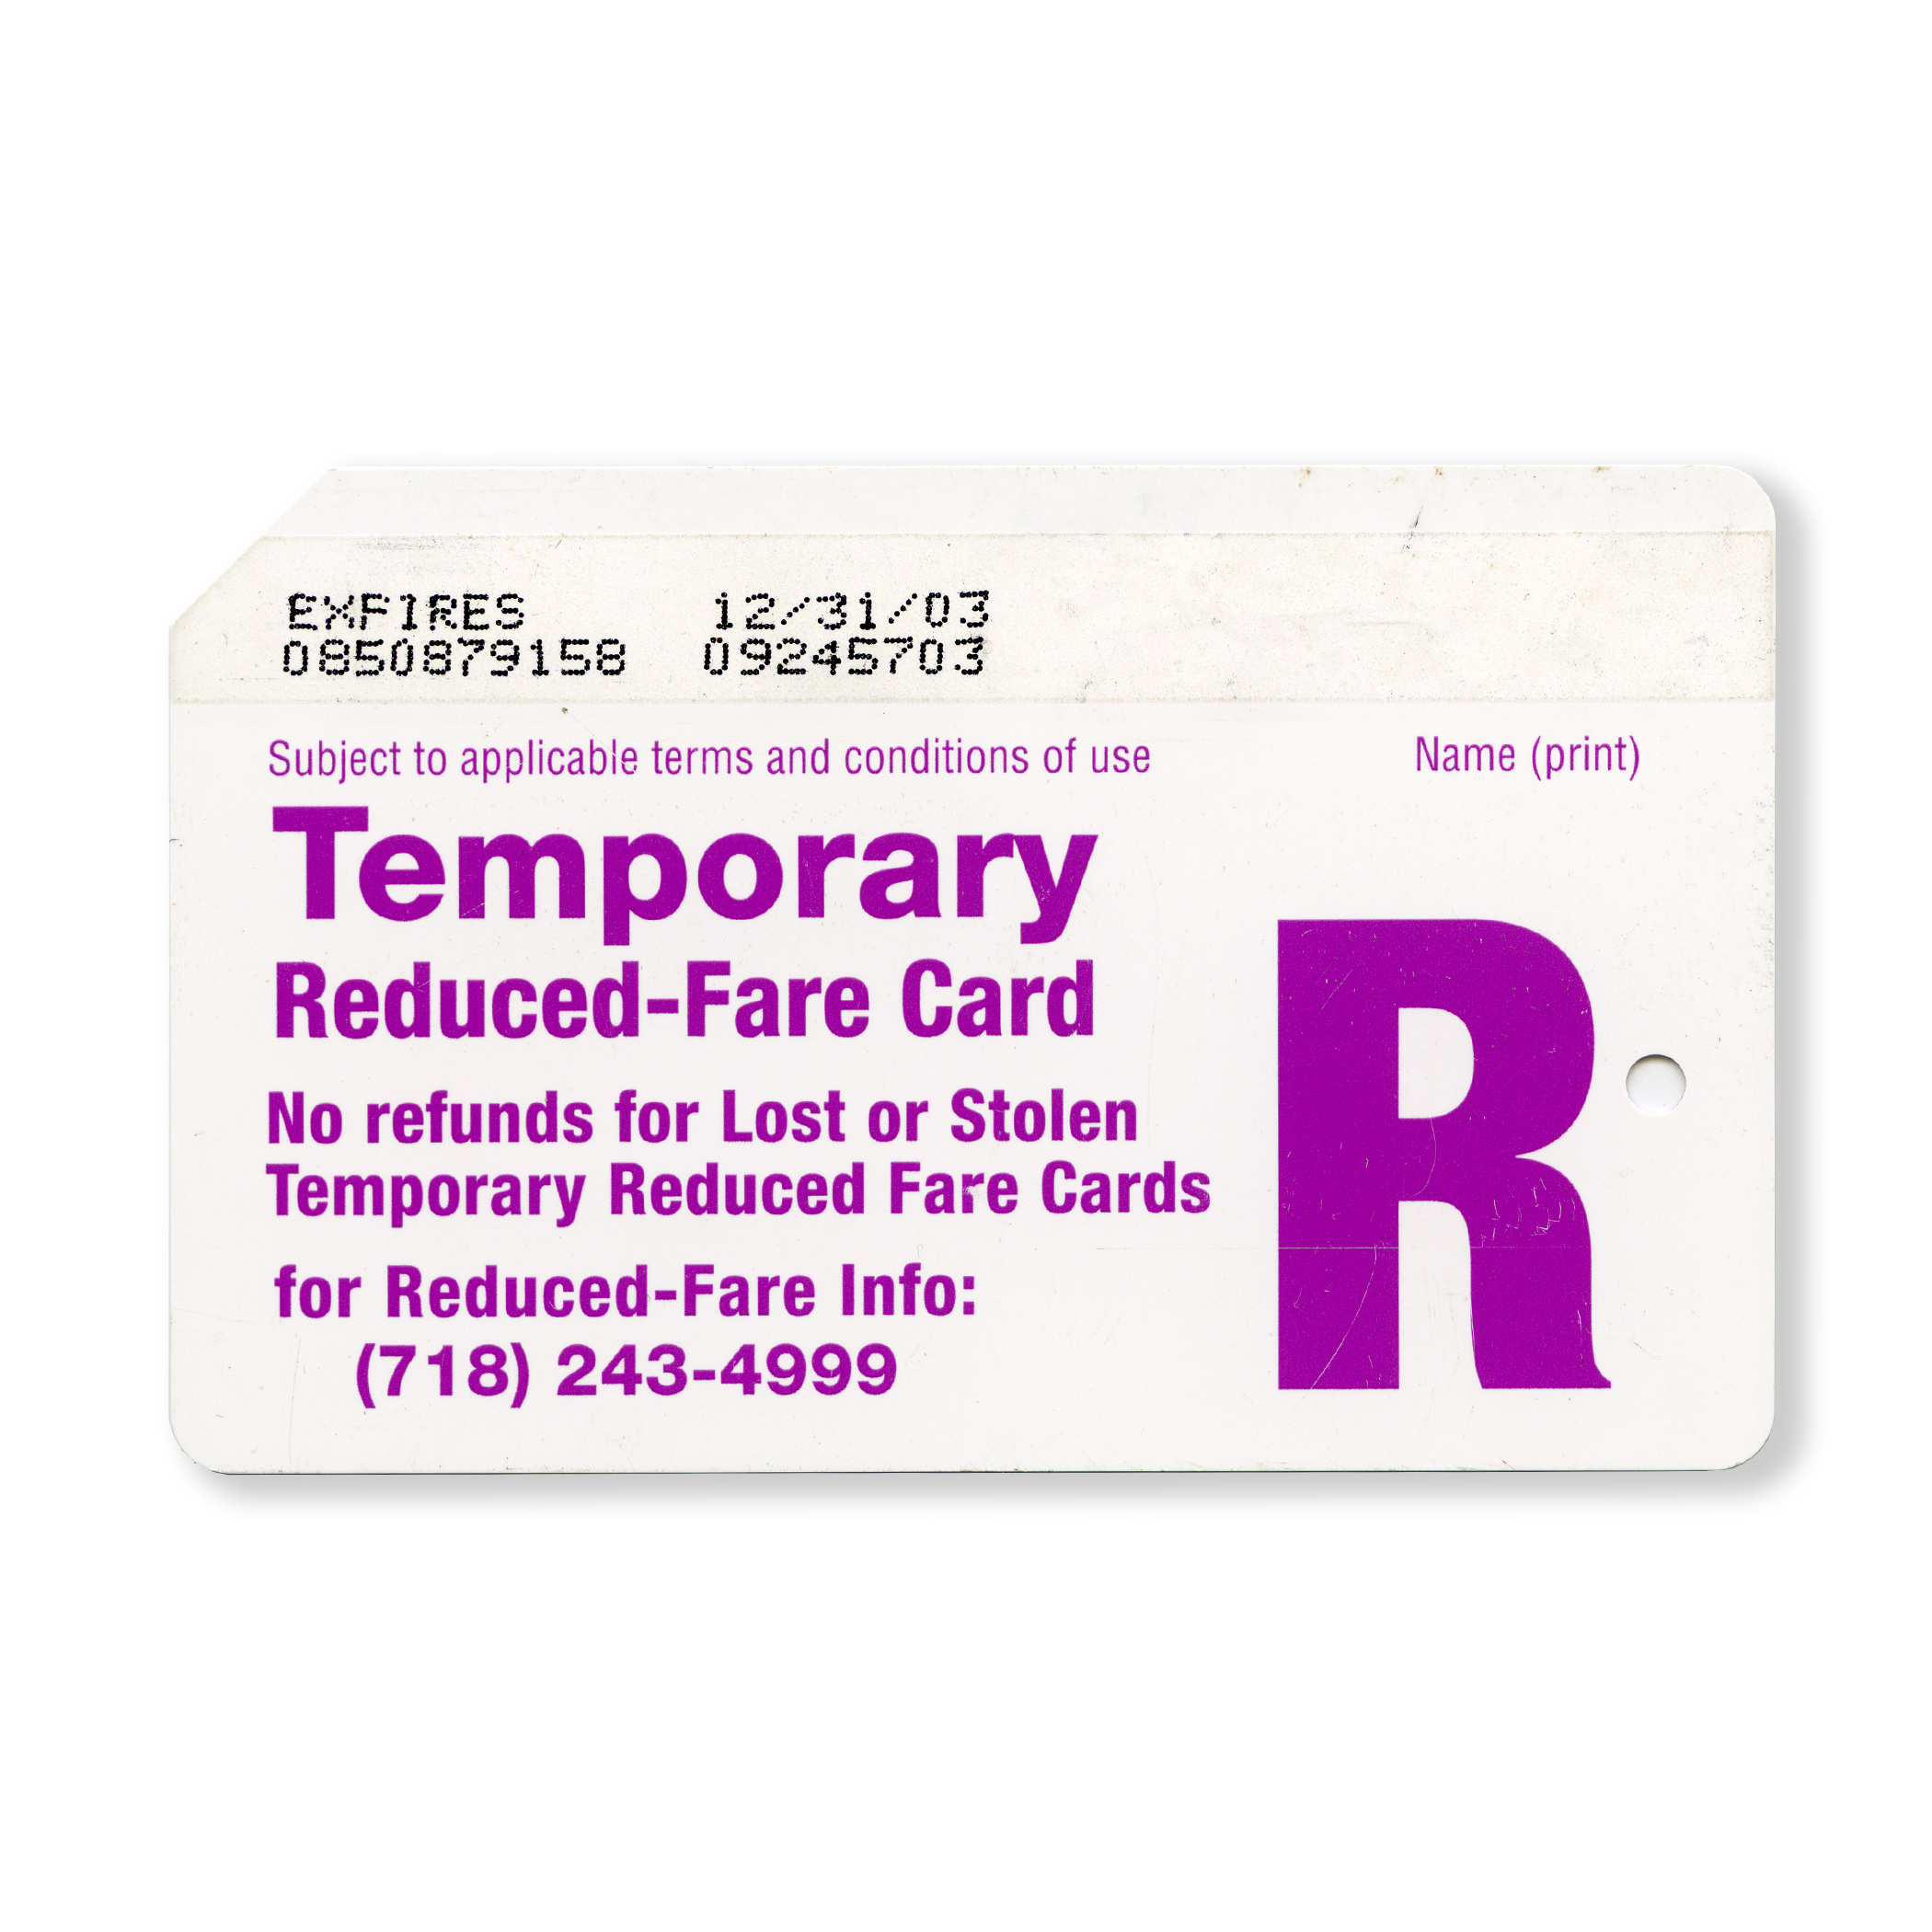 the_nycta_project_2002_temporary_reduced_fare_card.jpg